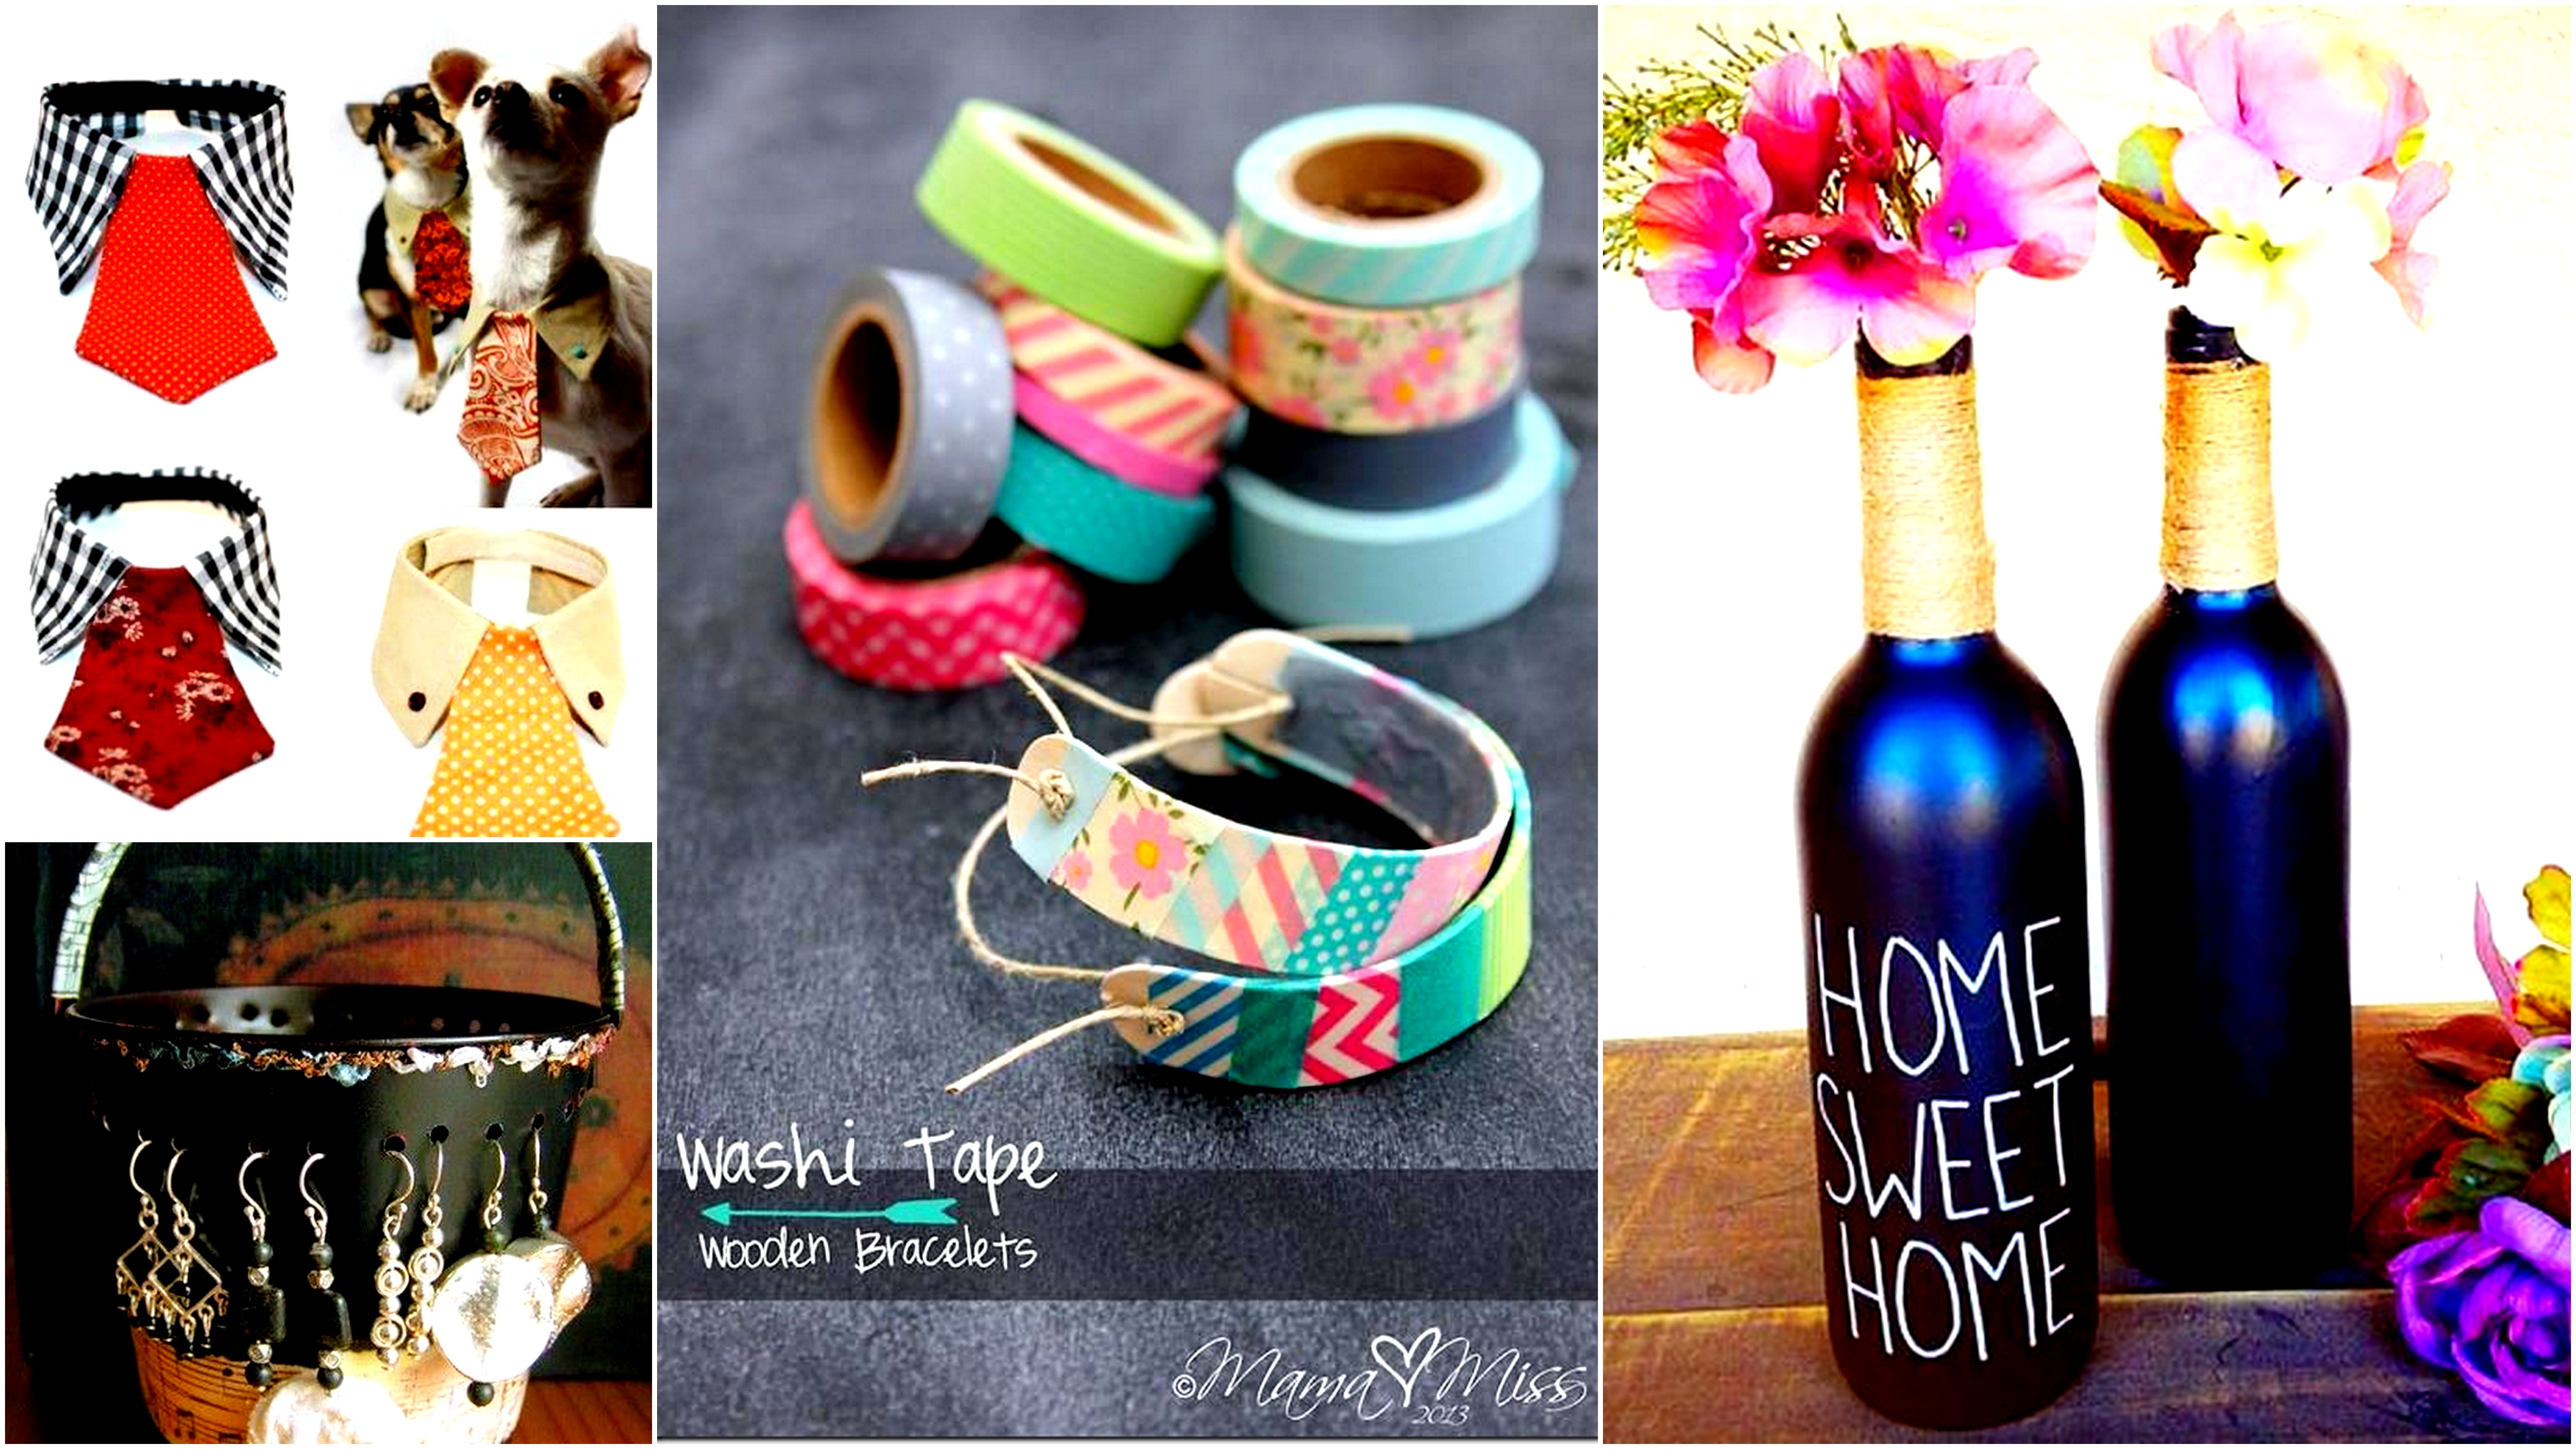 41 Smart And Creative DIY Projects That You Can Make Sell With Ease